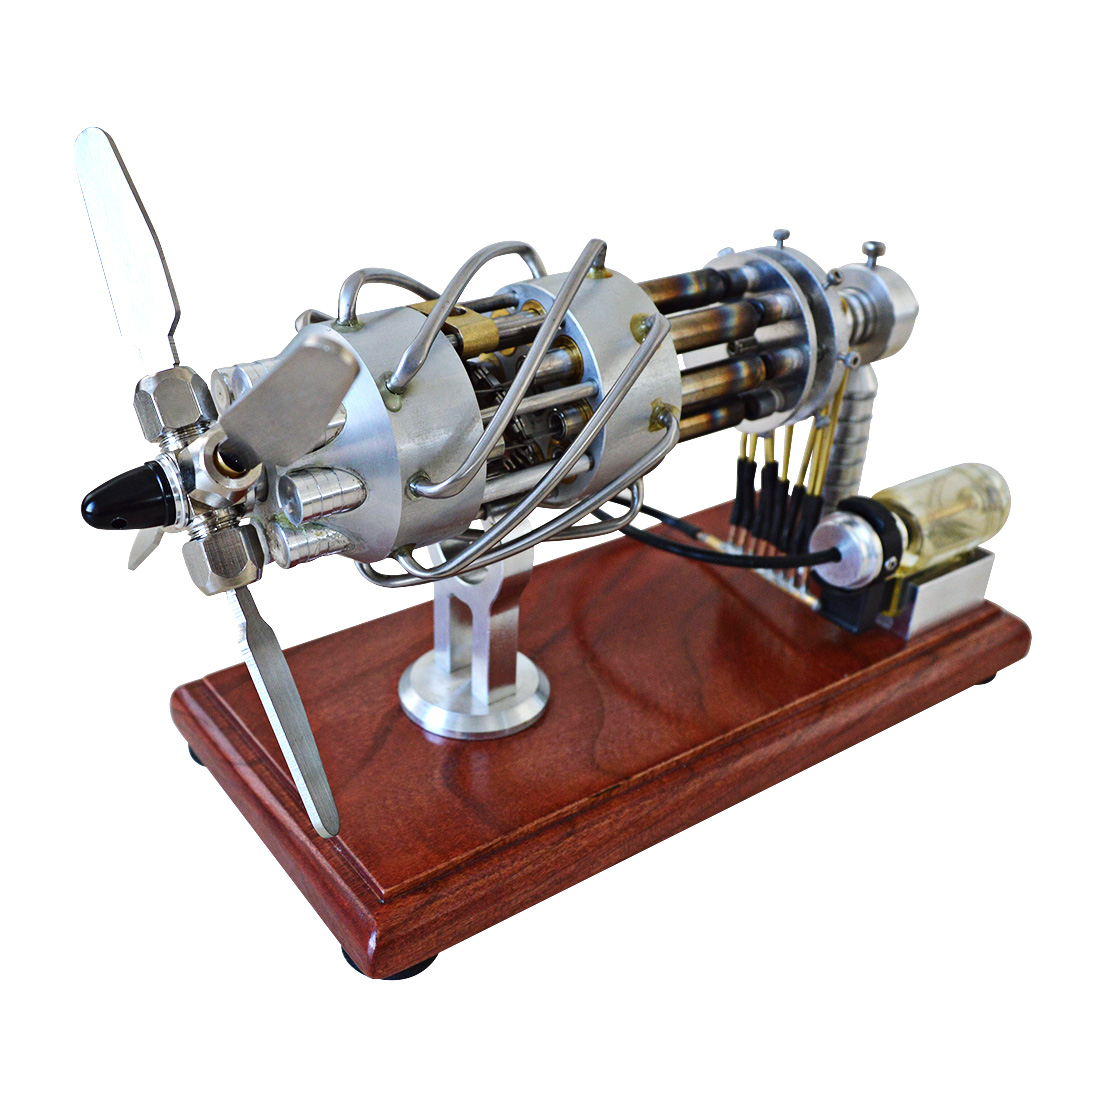 Hot Air Stirling Engine Motor Model 16 Cylinders Swash Plate Physics Educational Toys For Kids Scientific Gift Toys 2018-Silver